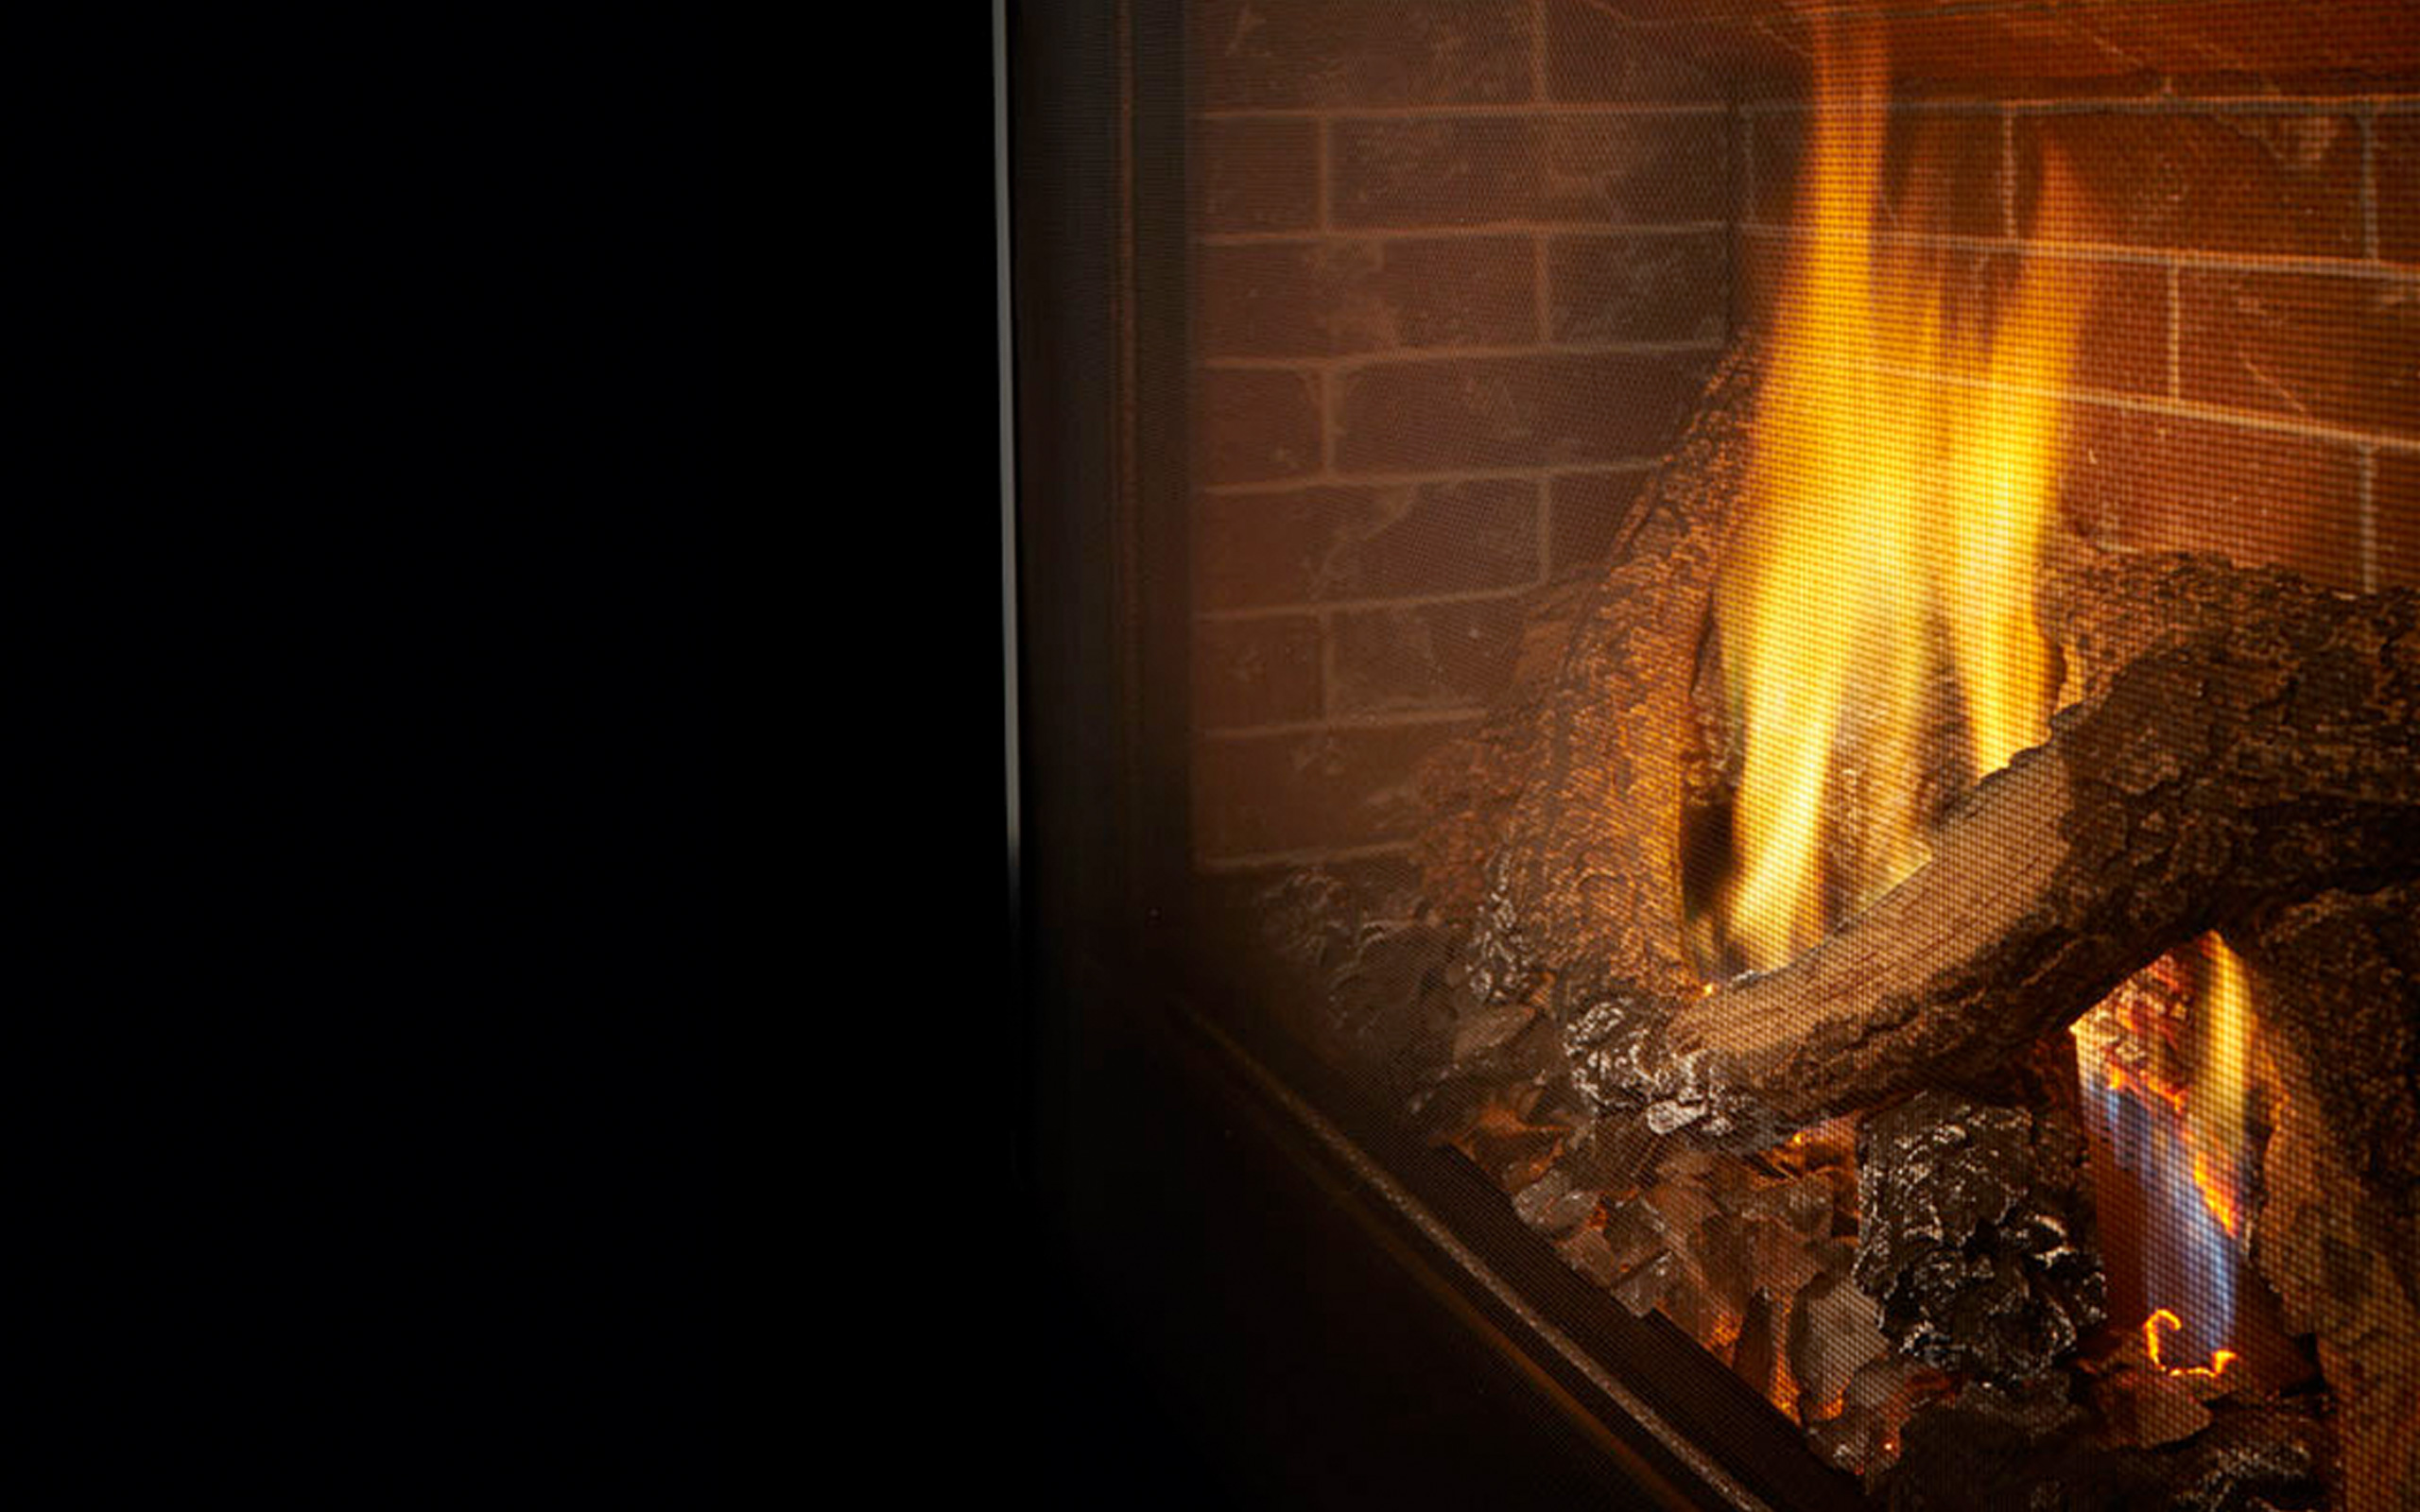 Propane Fireplace Repair Near Me Welcome To Flame Pro Tech Inc Let S Keep Your Fireplace